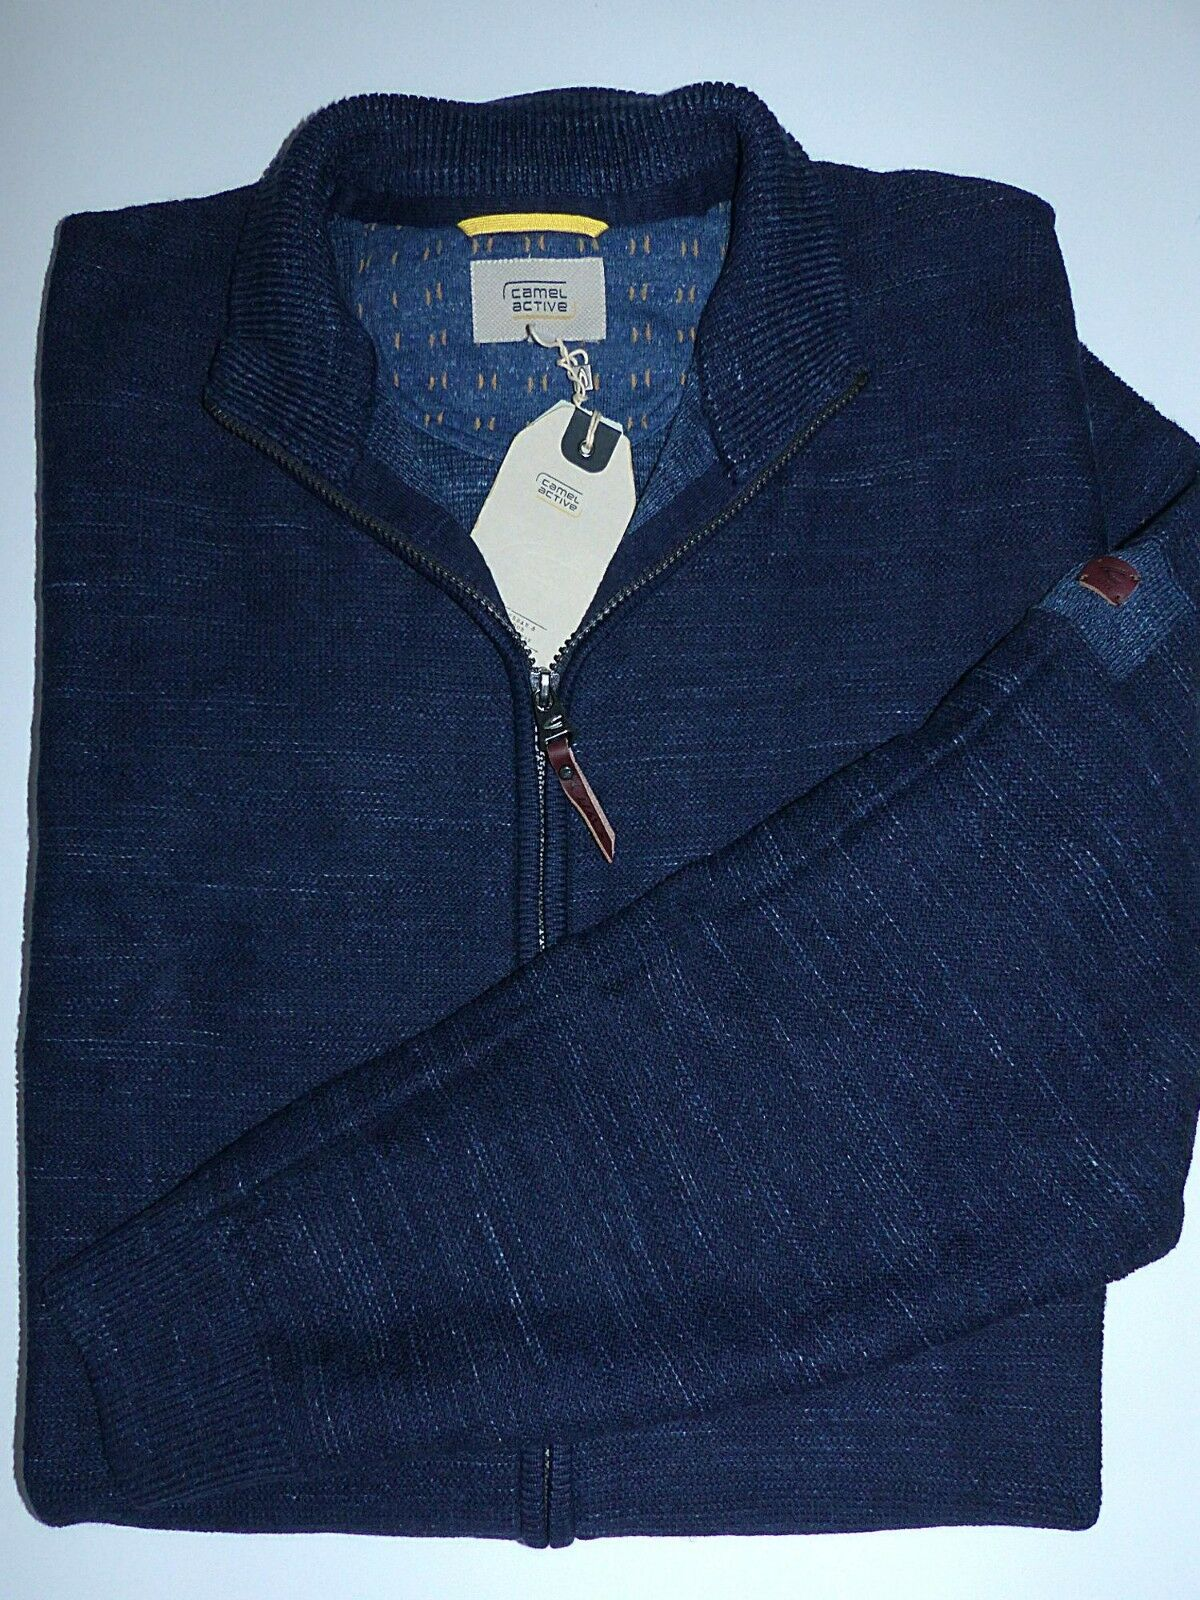 CAMEL Active Uomo Giacca In Maglia Cardigan-blu Cardigan-blu Cardigan-blu dimensioni 2xl 3xl NUOVO UVP 129,95 2f796d